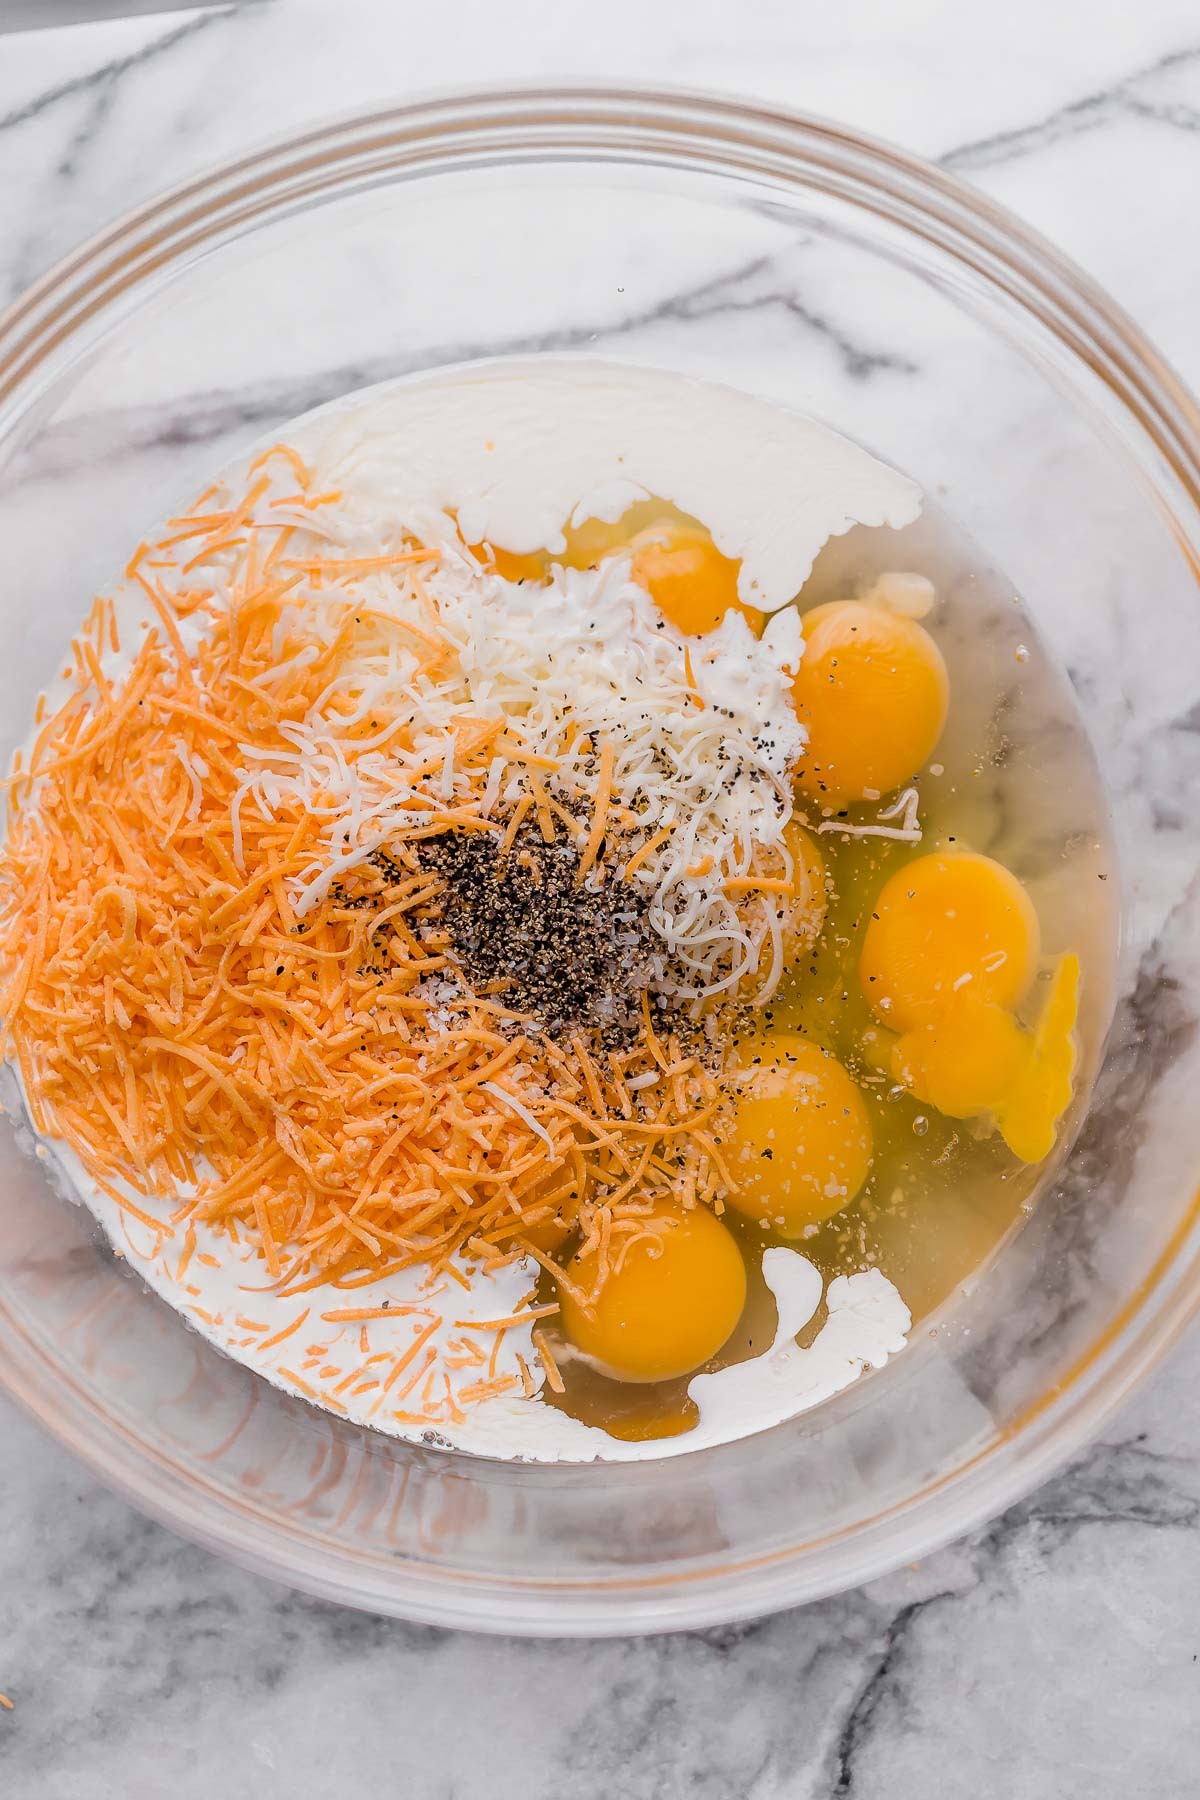 eggs, shredded cheddar, shredded mozzarella, heavy cream, salt, pepper on a glass mixing bowl